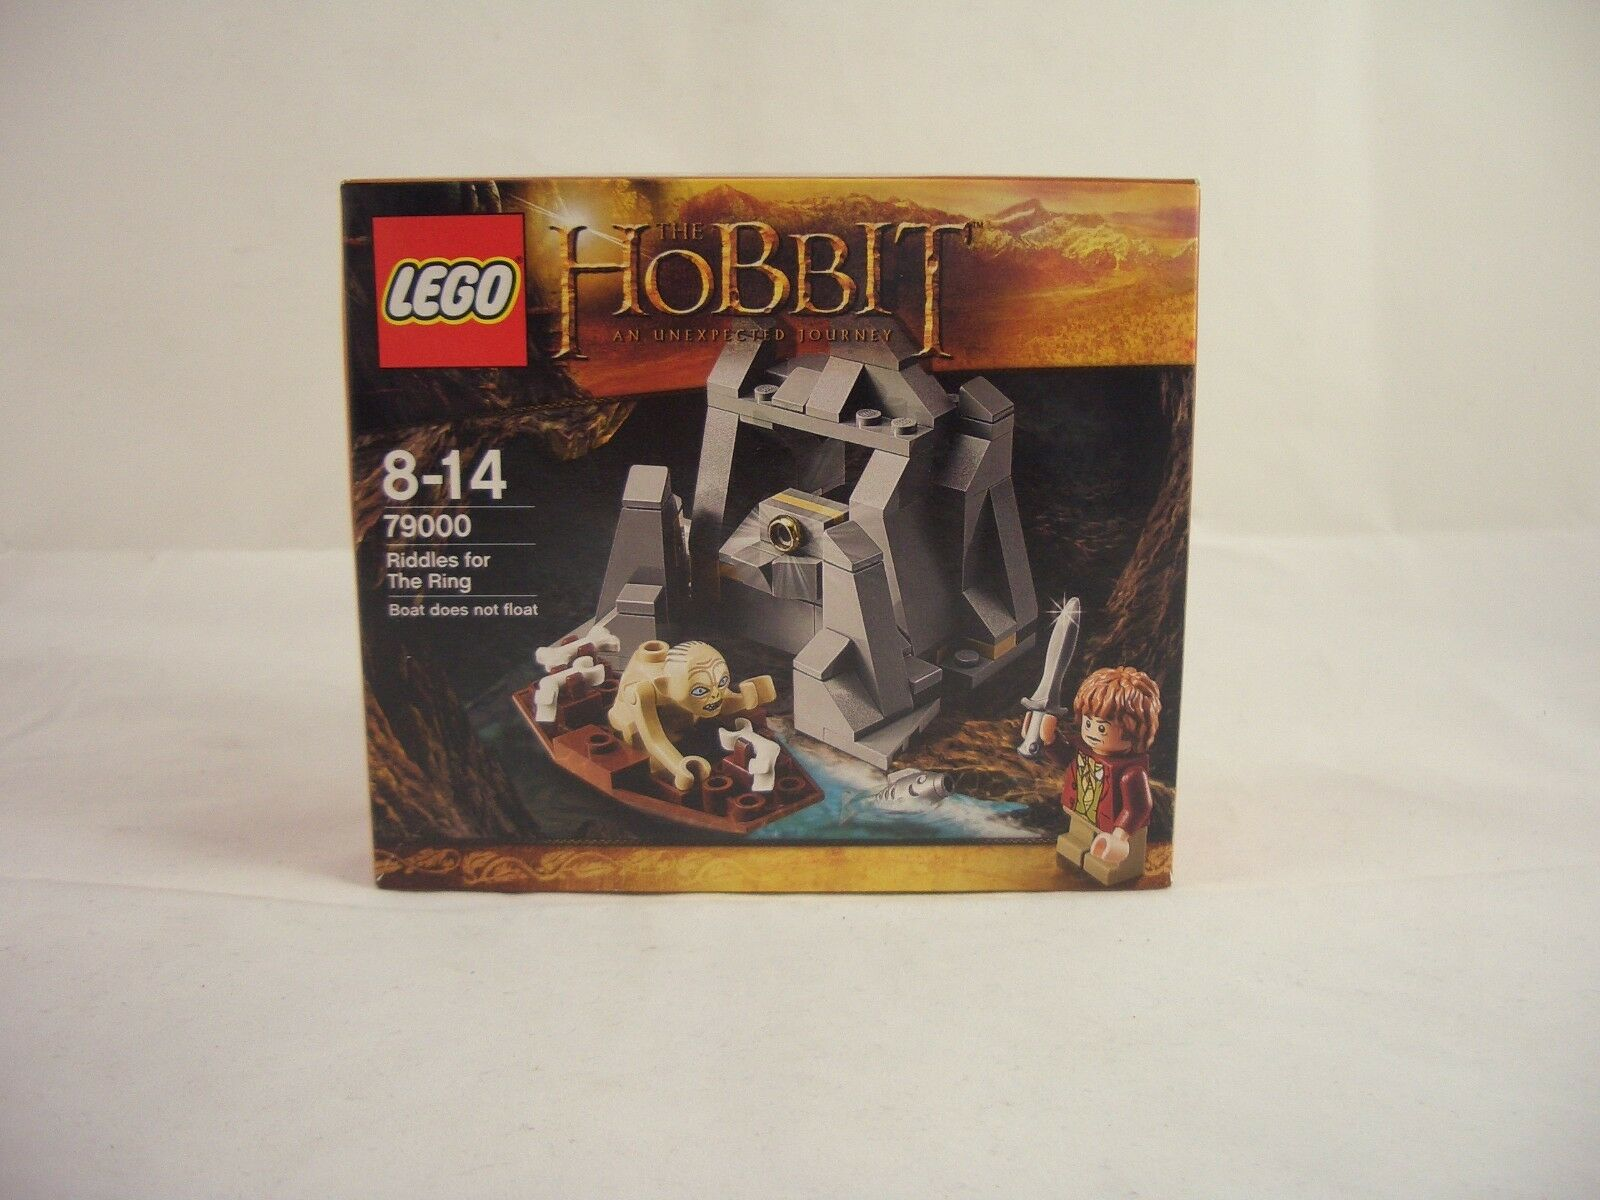 LEGO The Hobbit 79000 Riddles for the Ring New Sealed